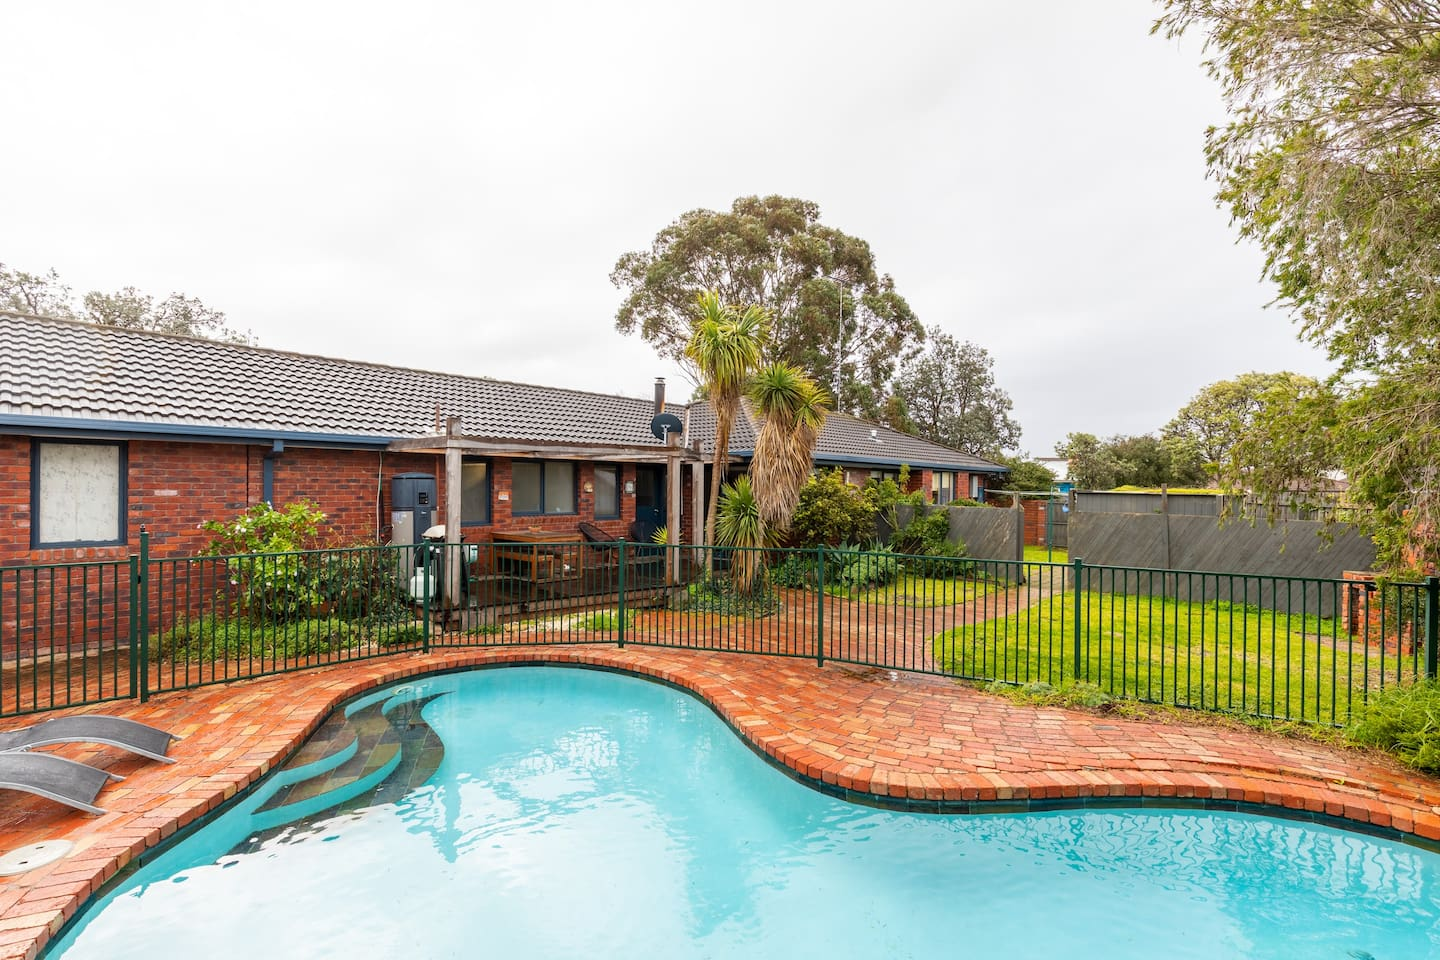 Spacious back yard with safely fenced pool and entertainer's deck